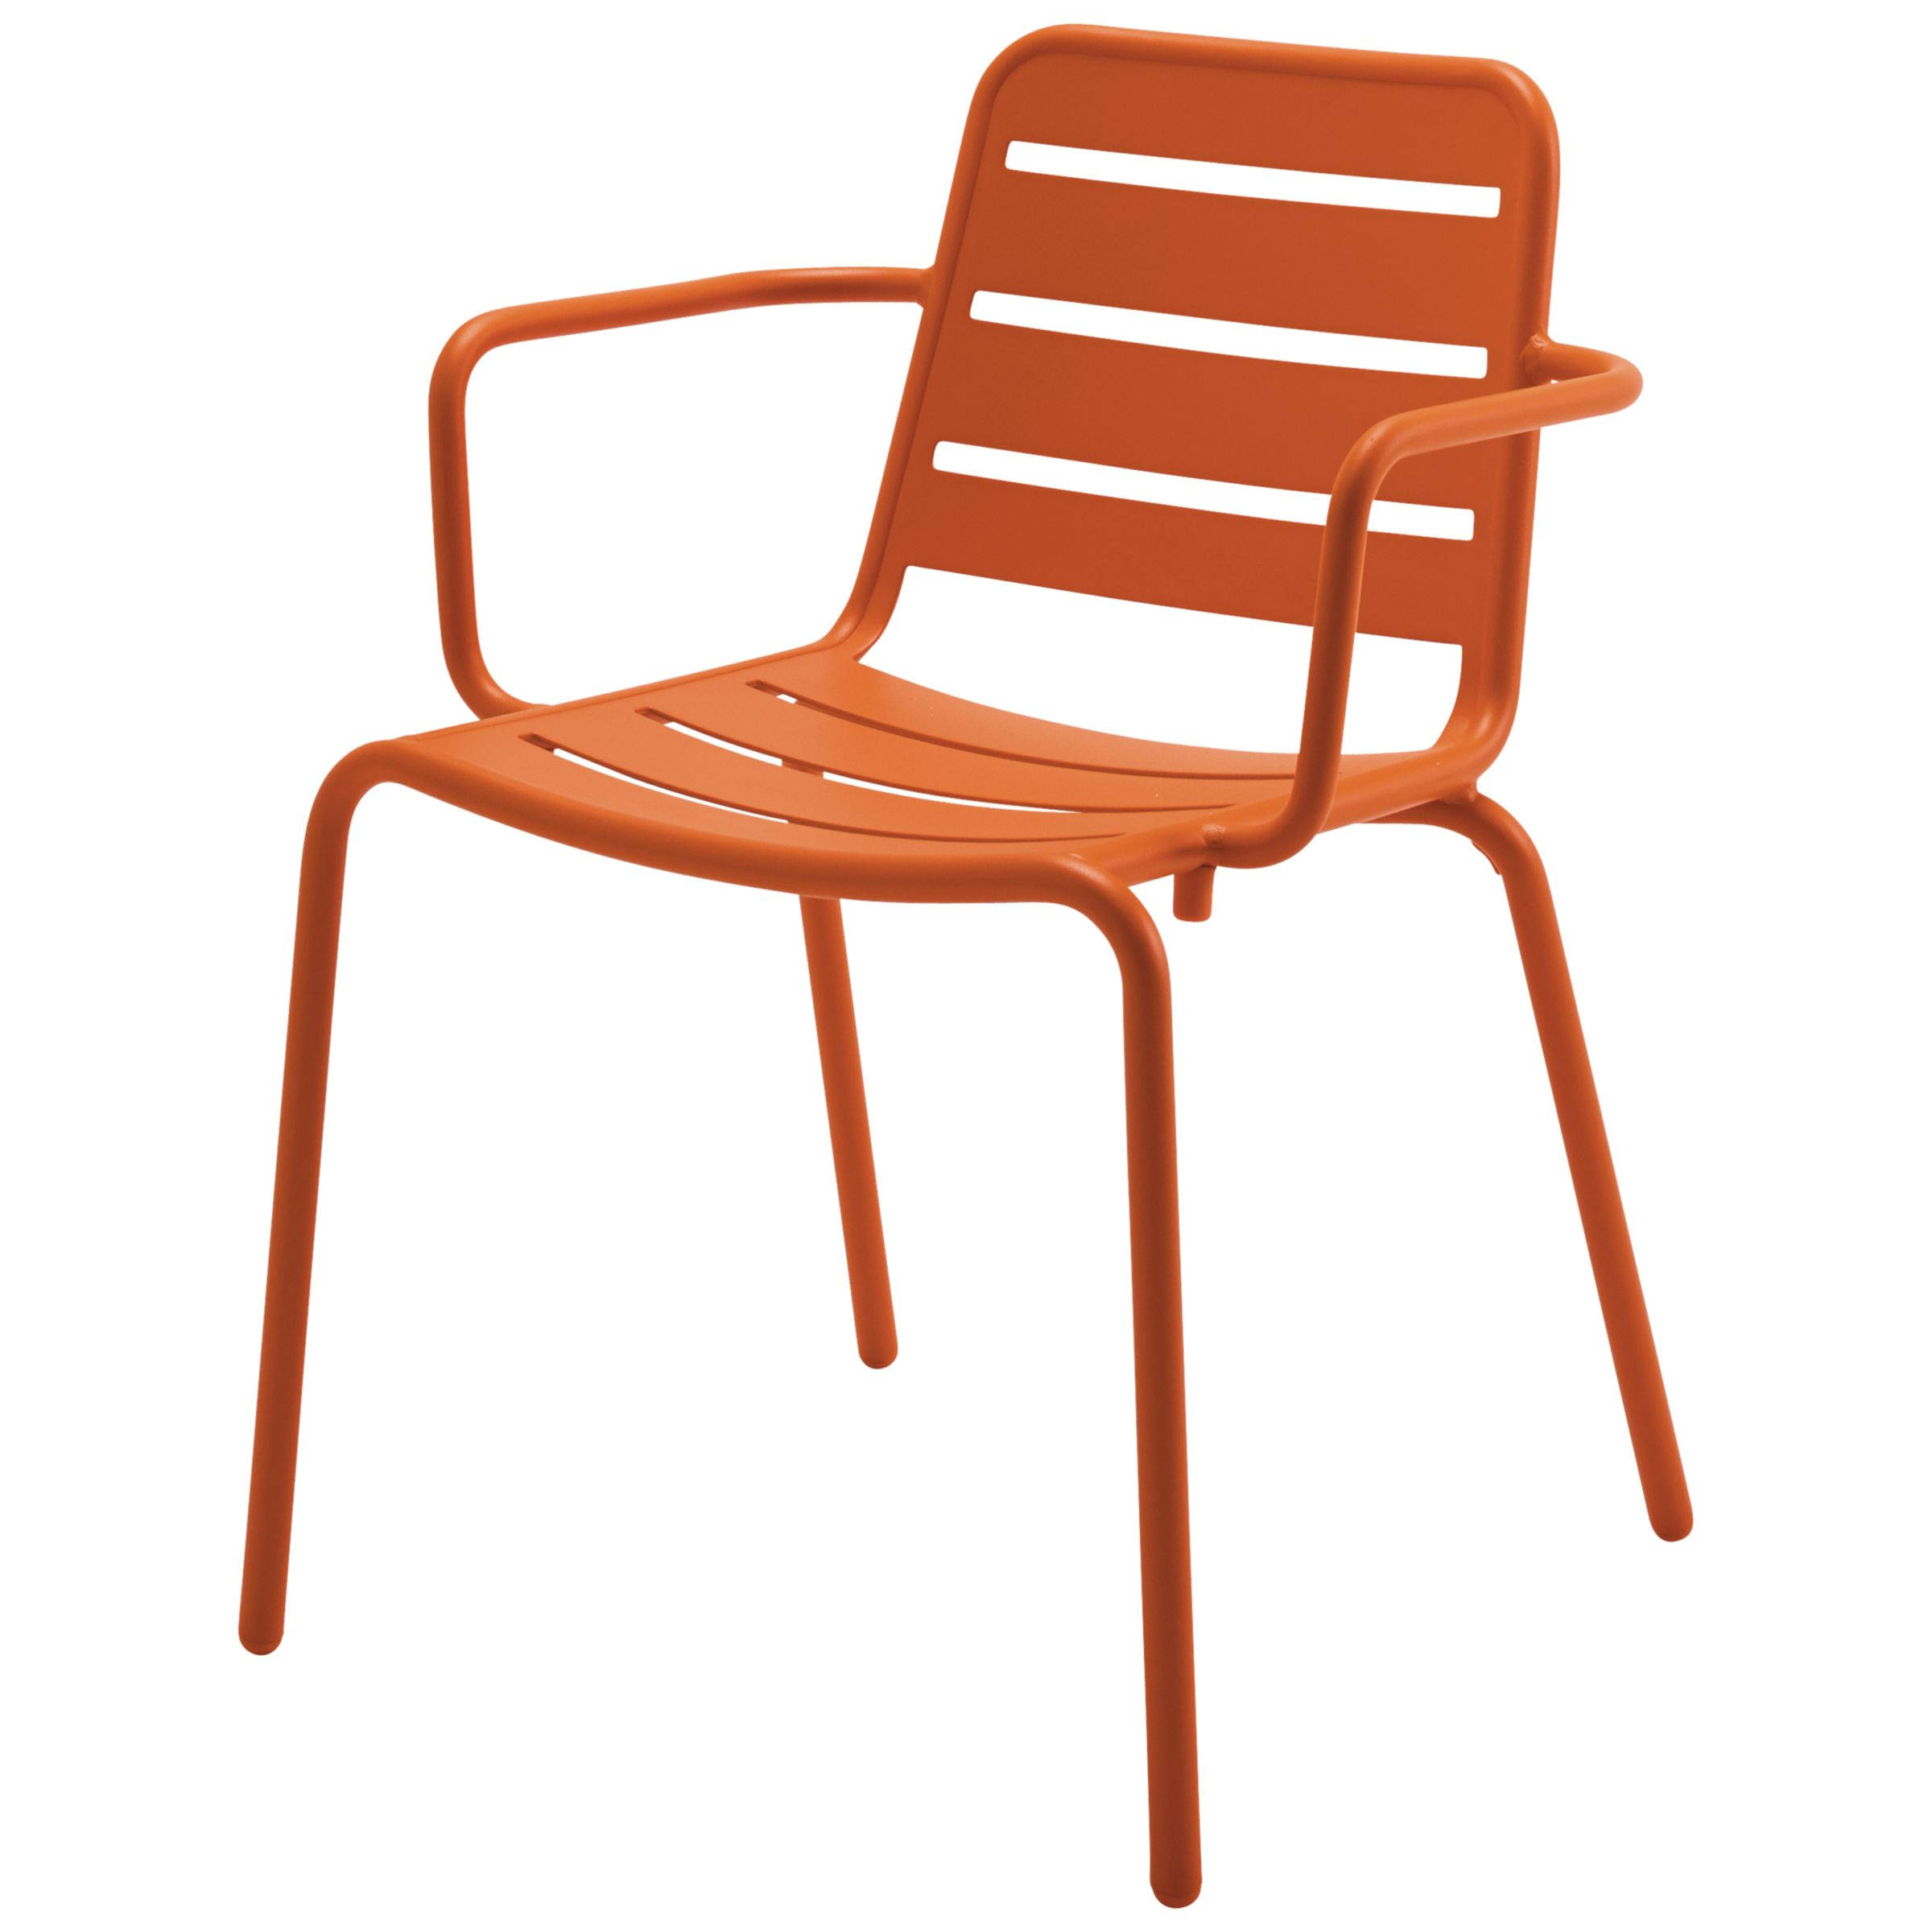 Gloster Nomad Stacking Chair with Arms, Flame